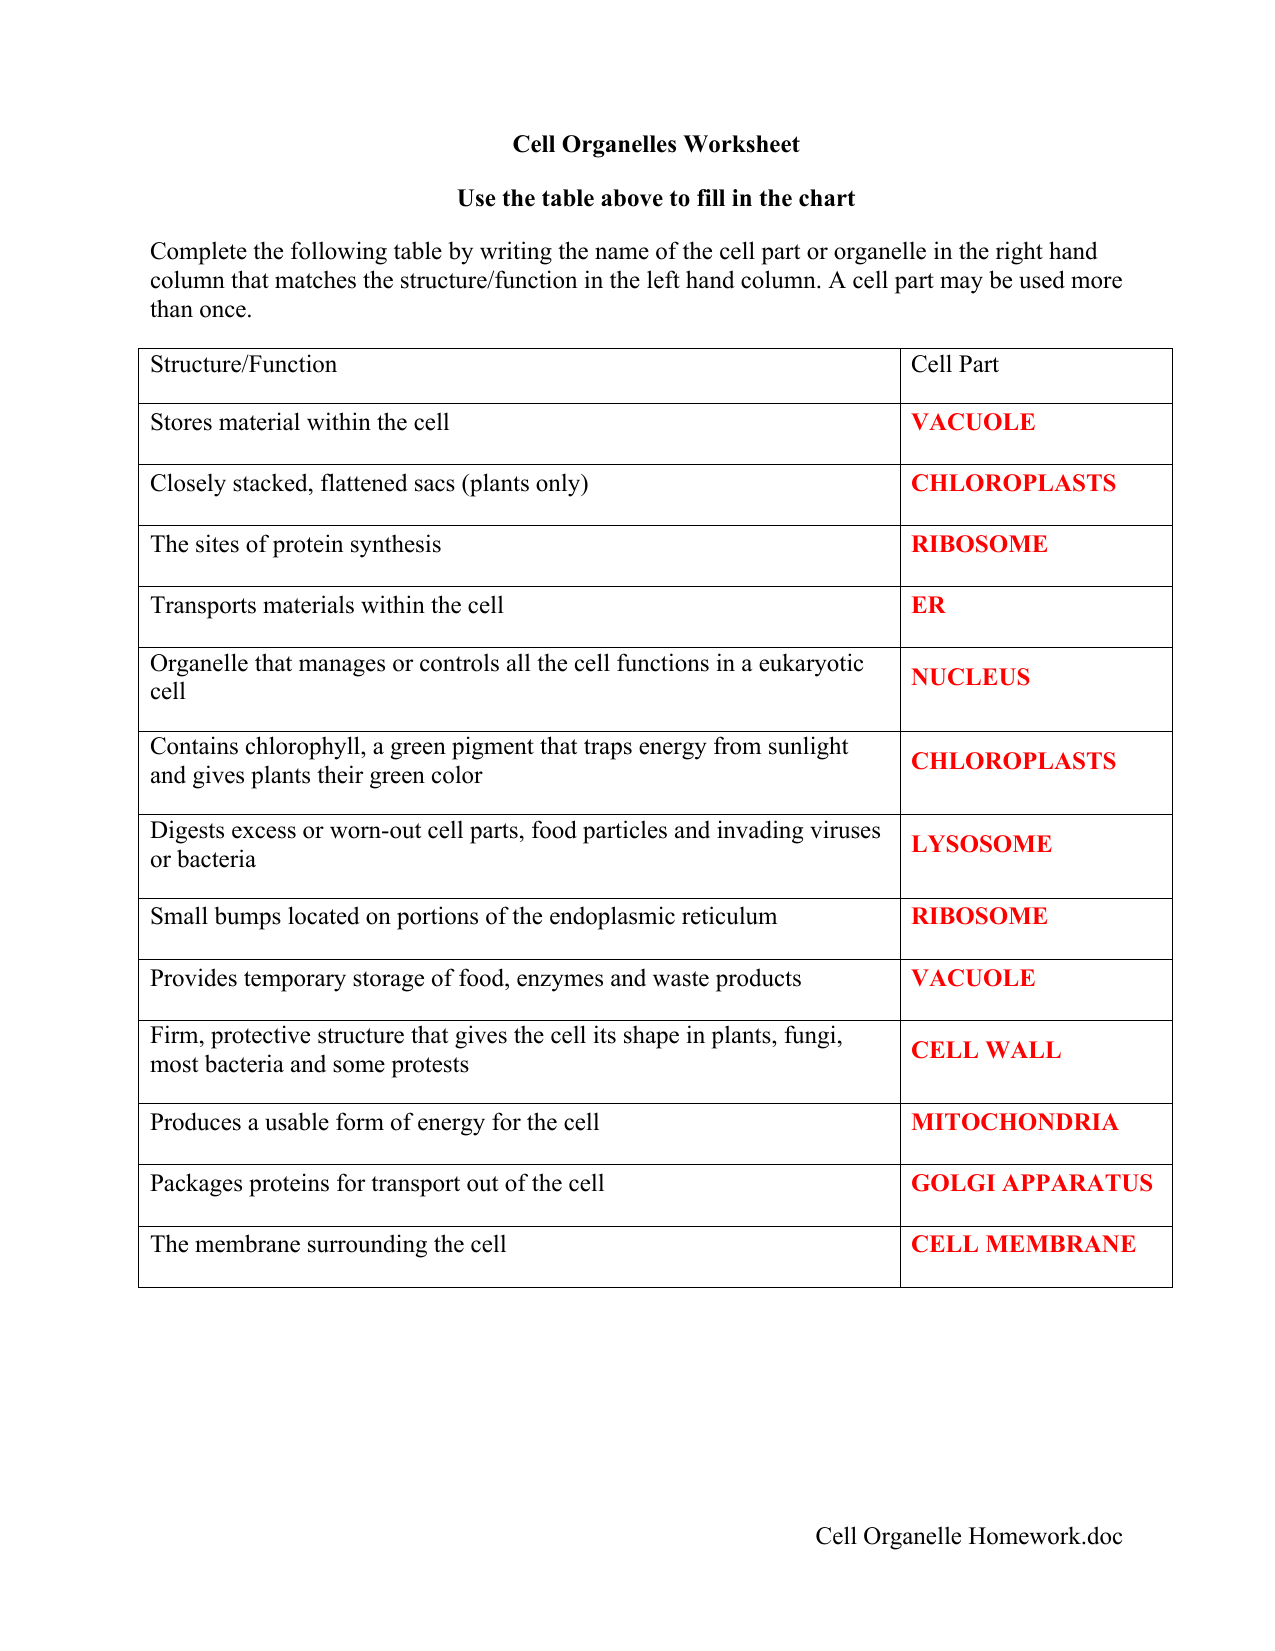 Cell Organelles And Their Functions Worksheet